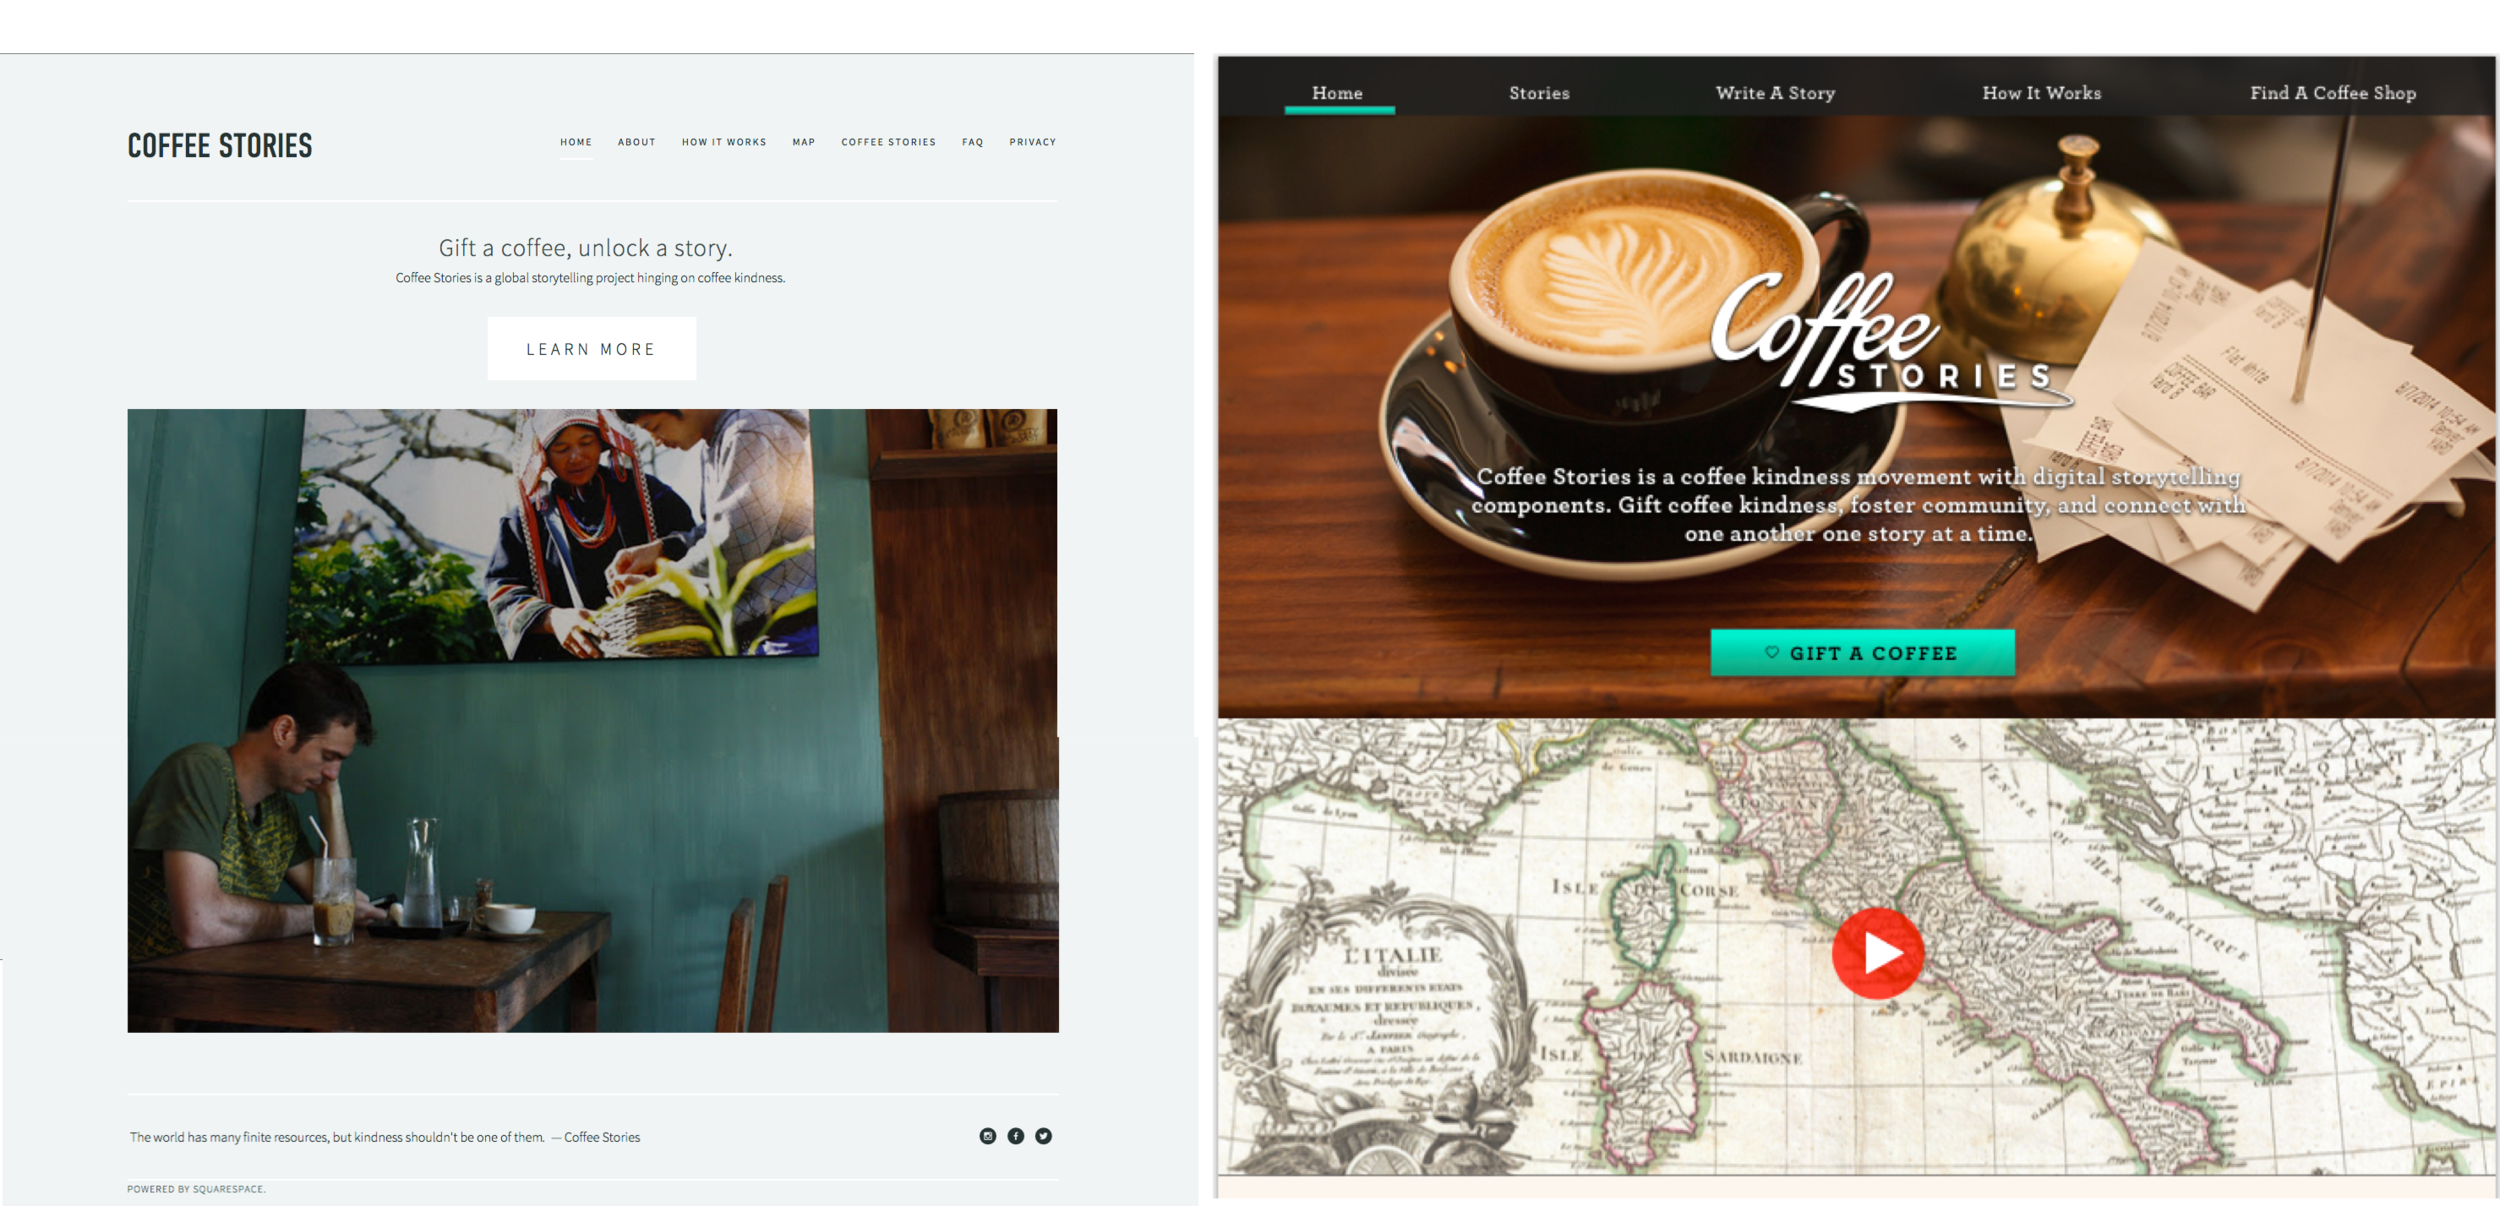 """We created a strong visual message with the company mission front and center along with a strong call to action to """"Gift a Coffee"""""""